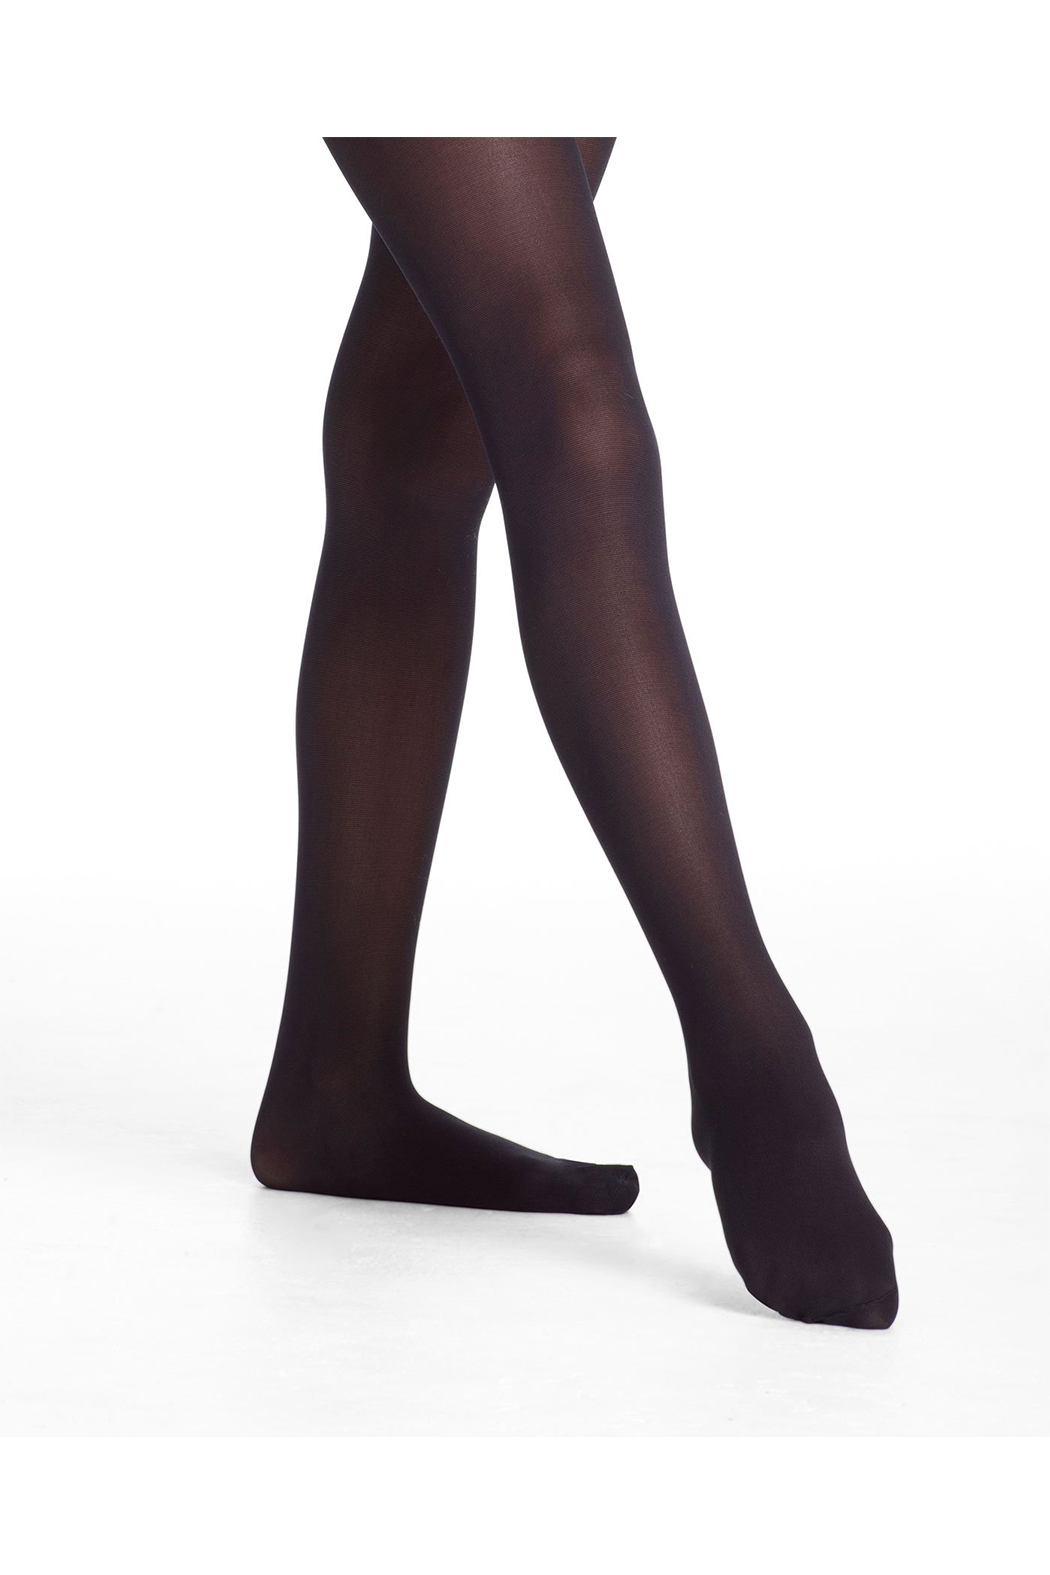 Danskin Girl's 703 Basic Footed Tights - Main Image